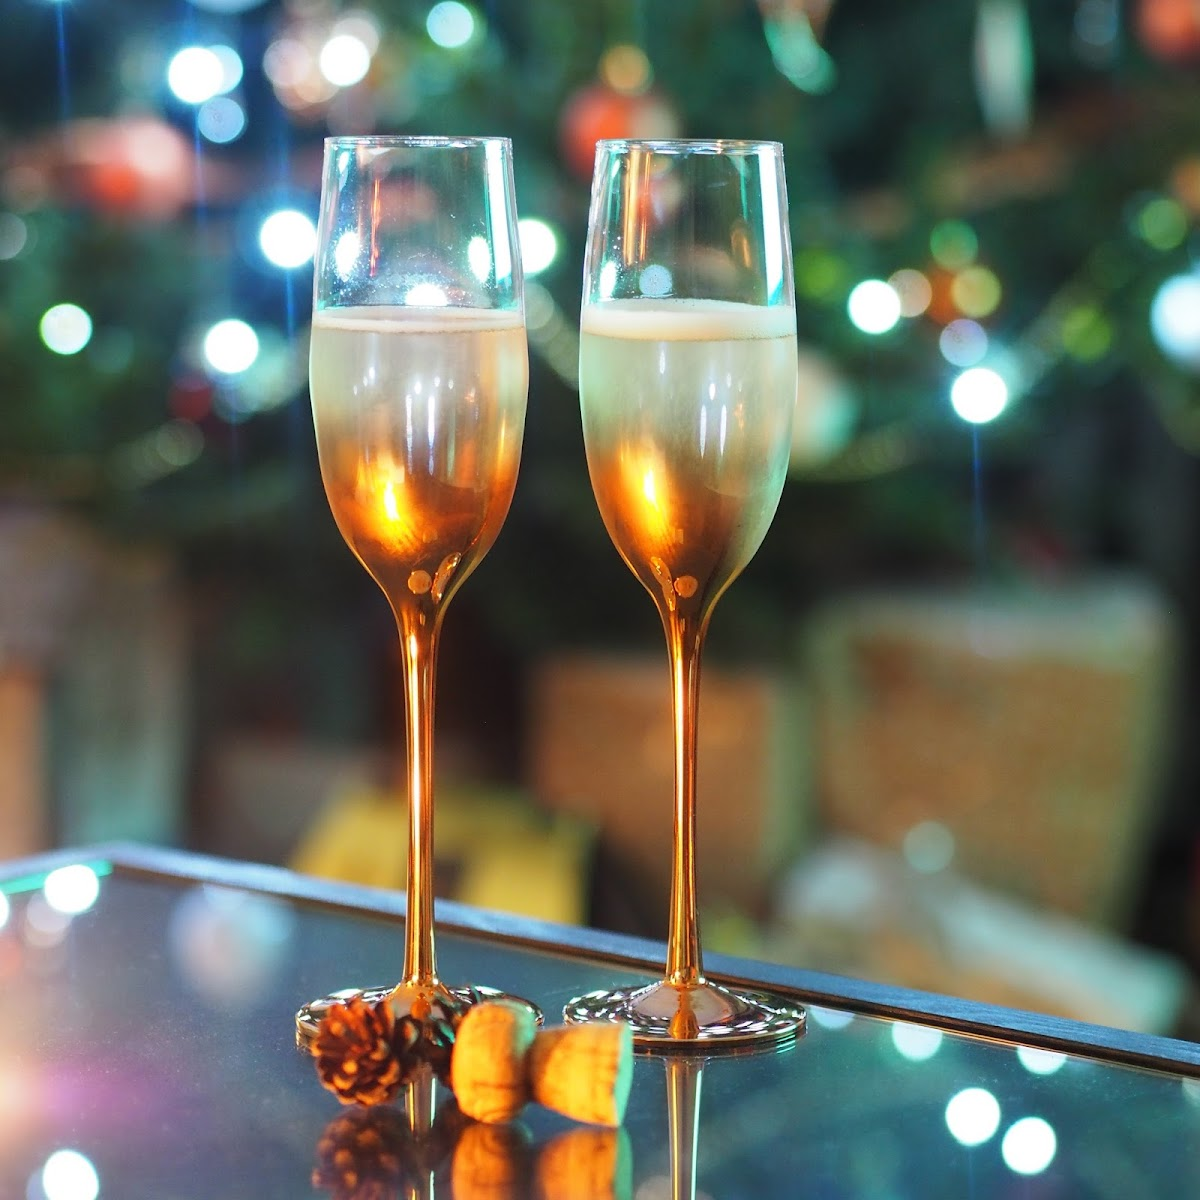 Christmas 2016 New Year Priceless Life of Mine over 40 lifestyle blog